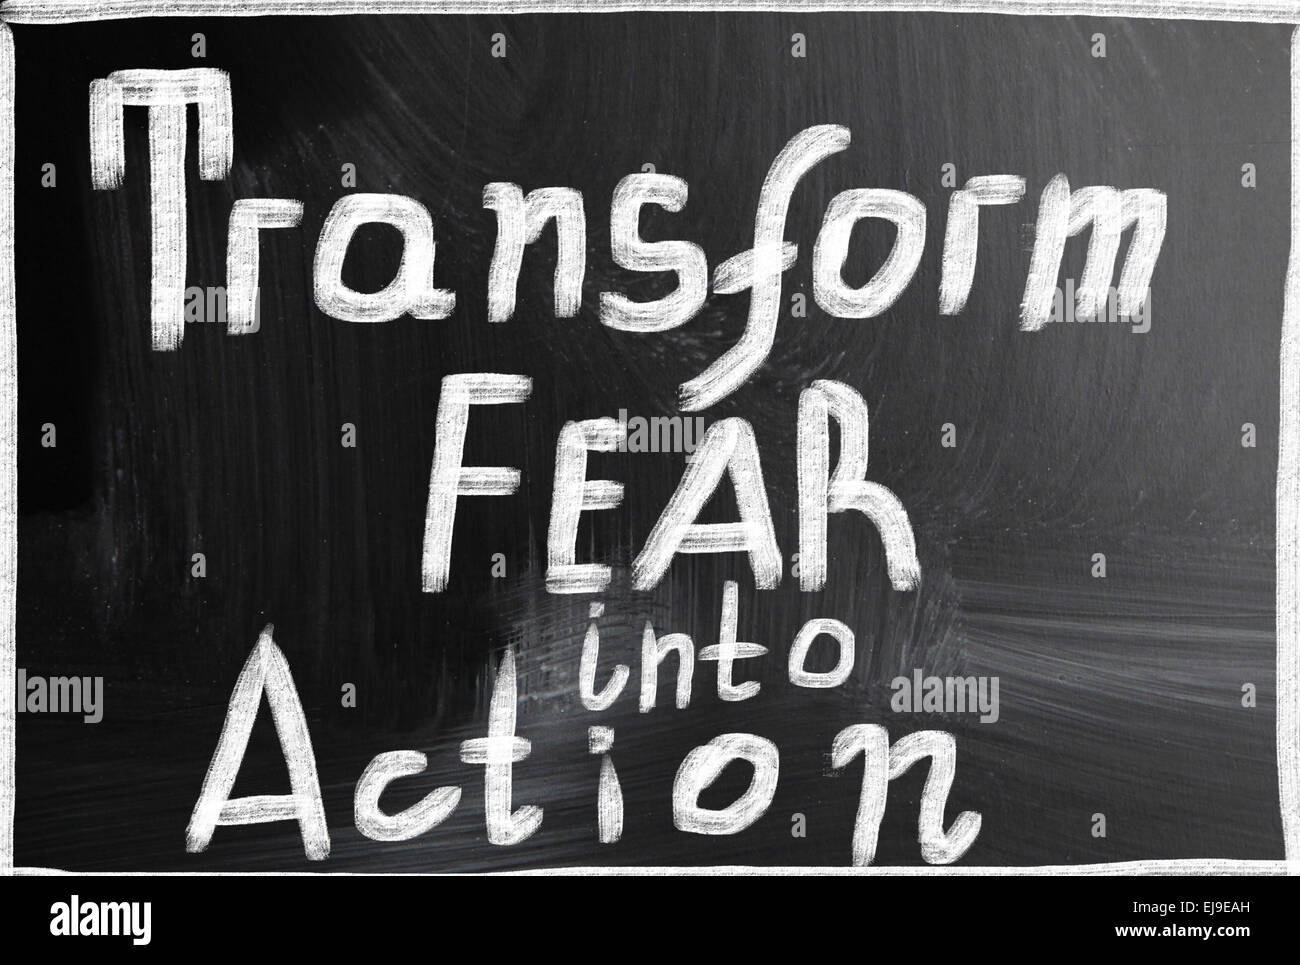 transform fear into action - Stock Image